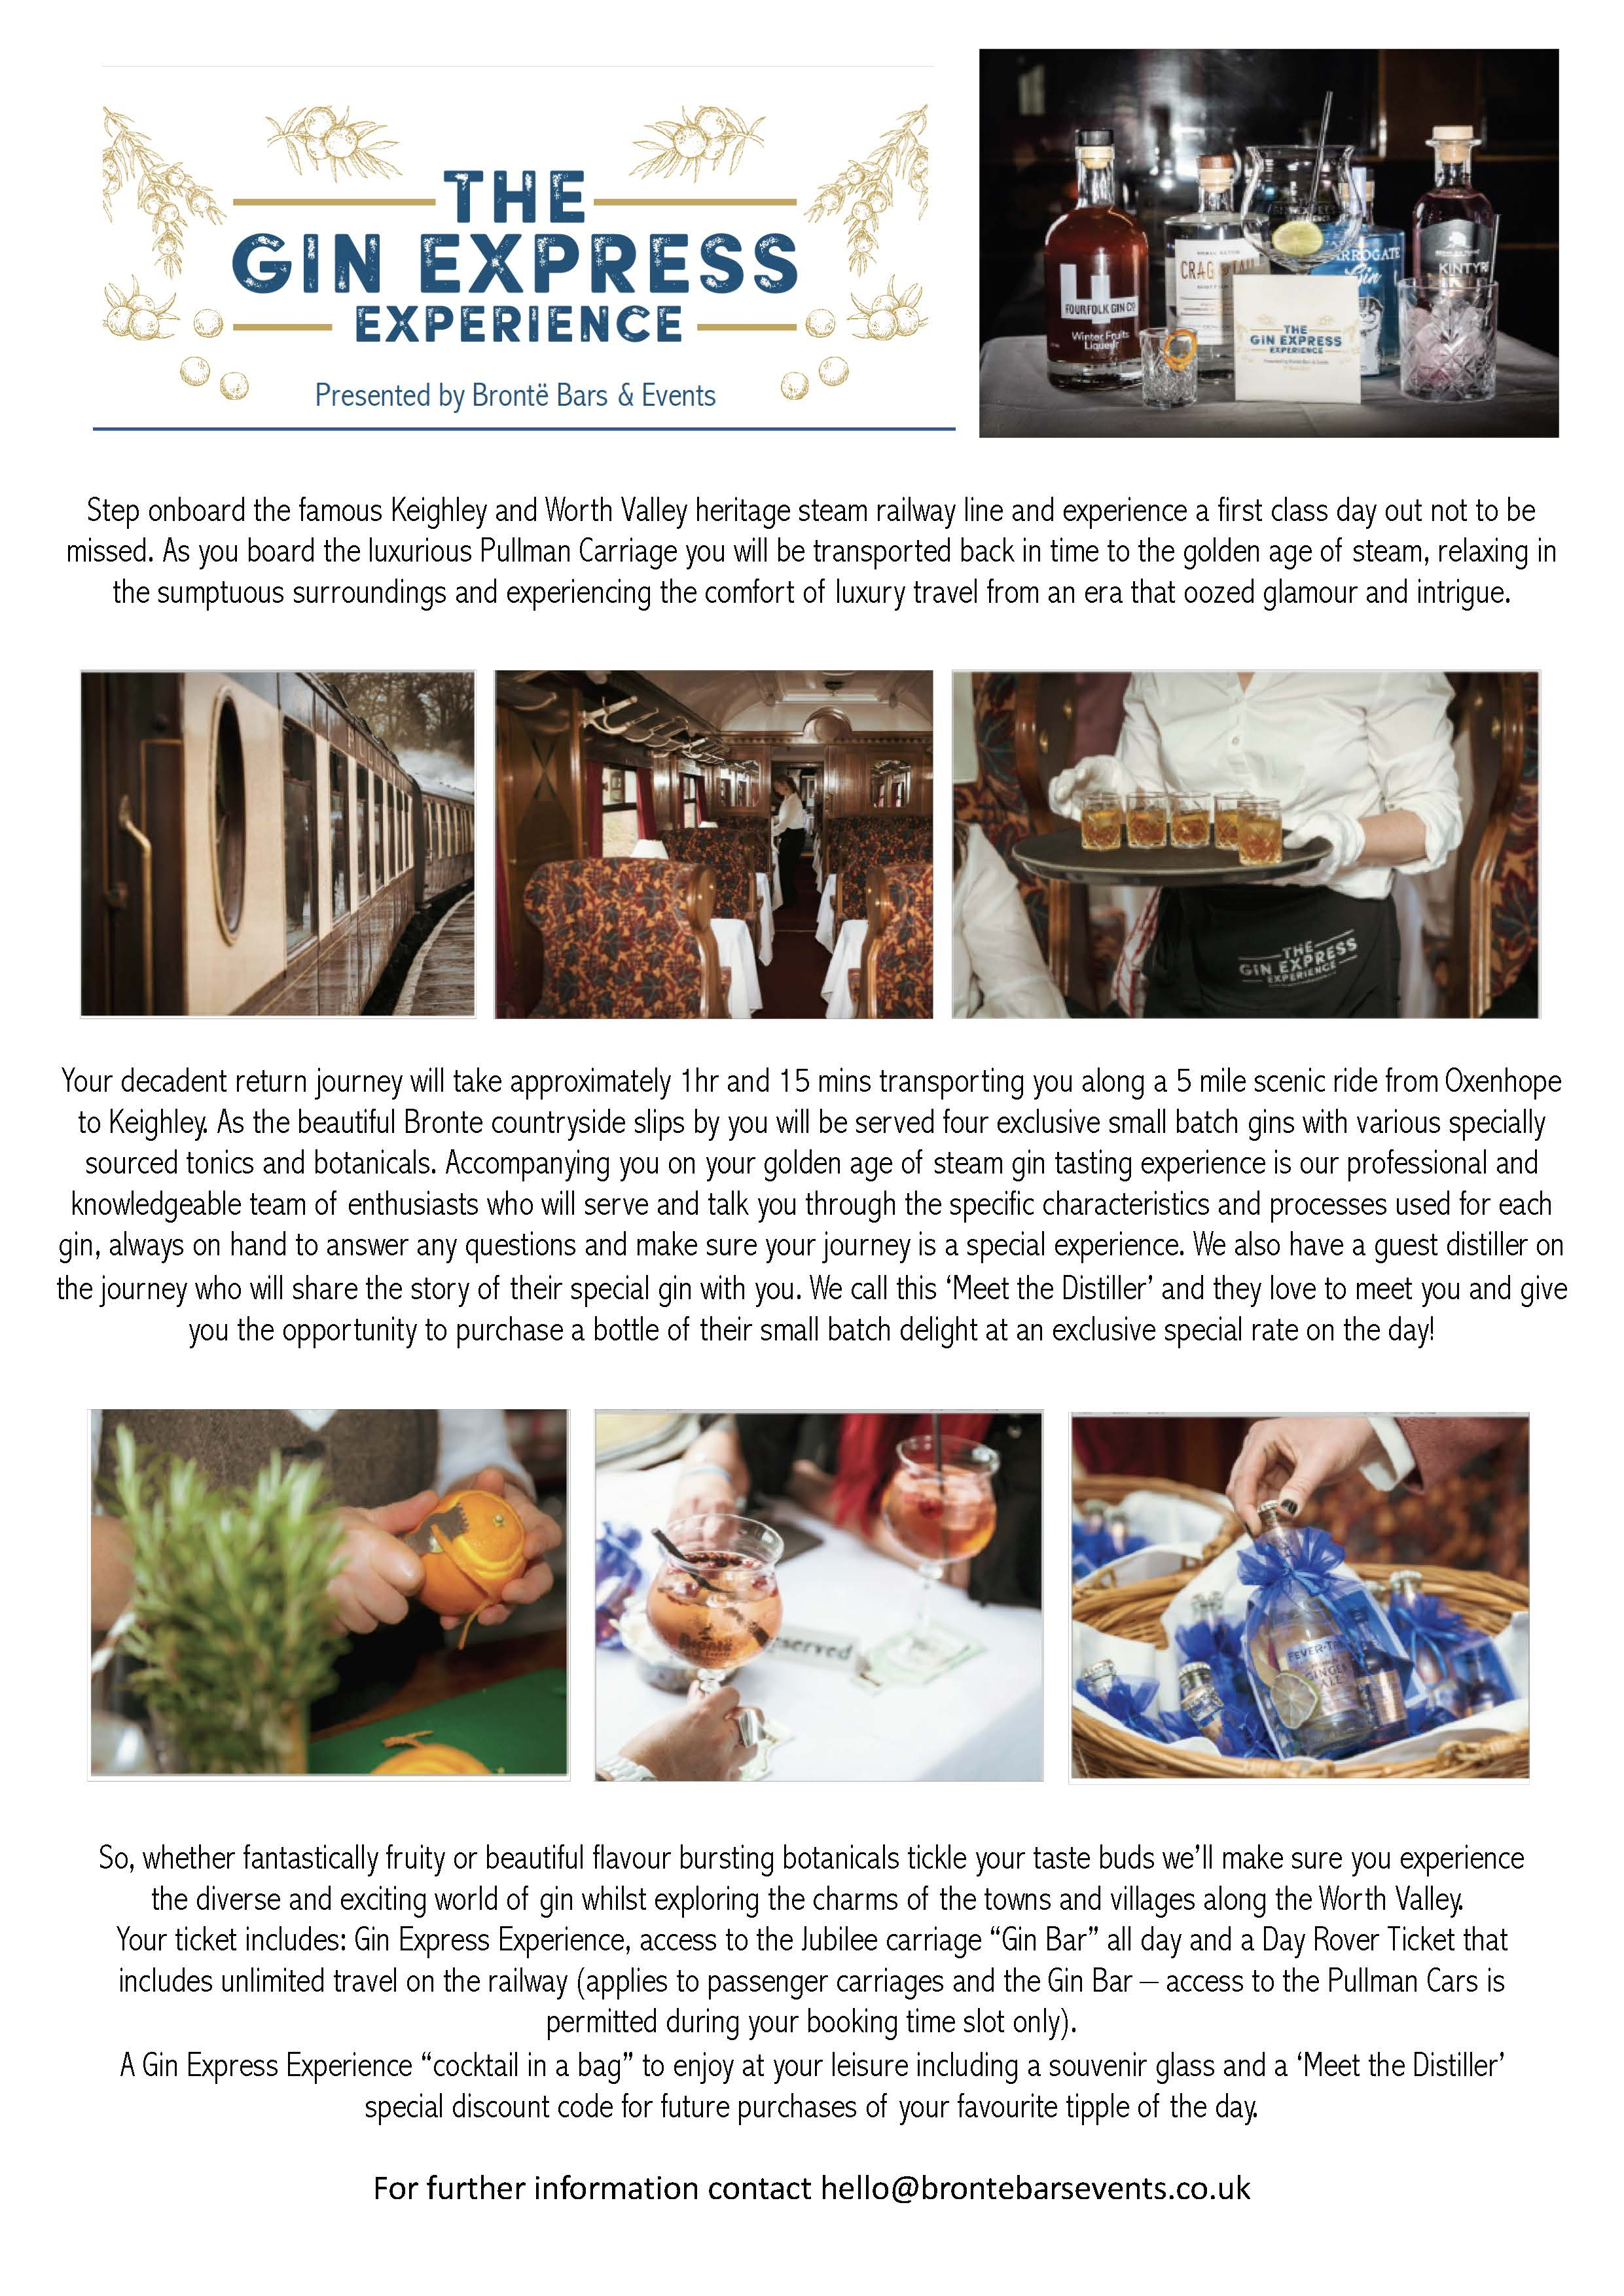 information about the gin express experience